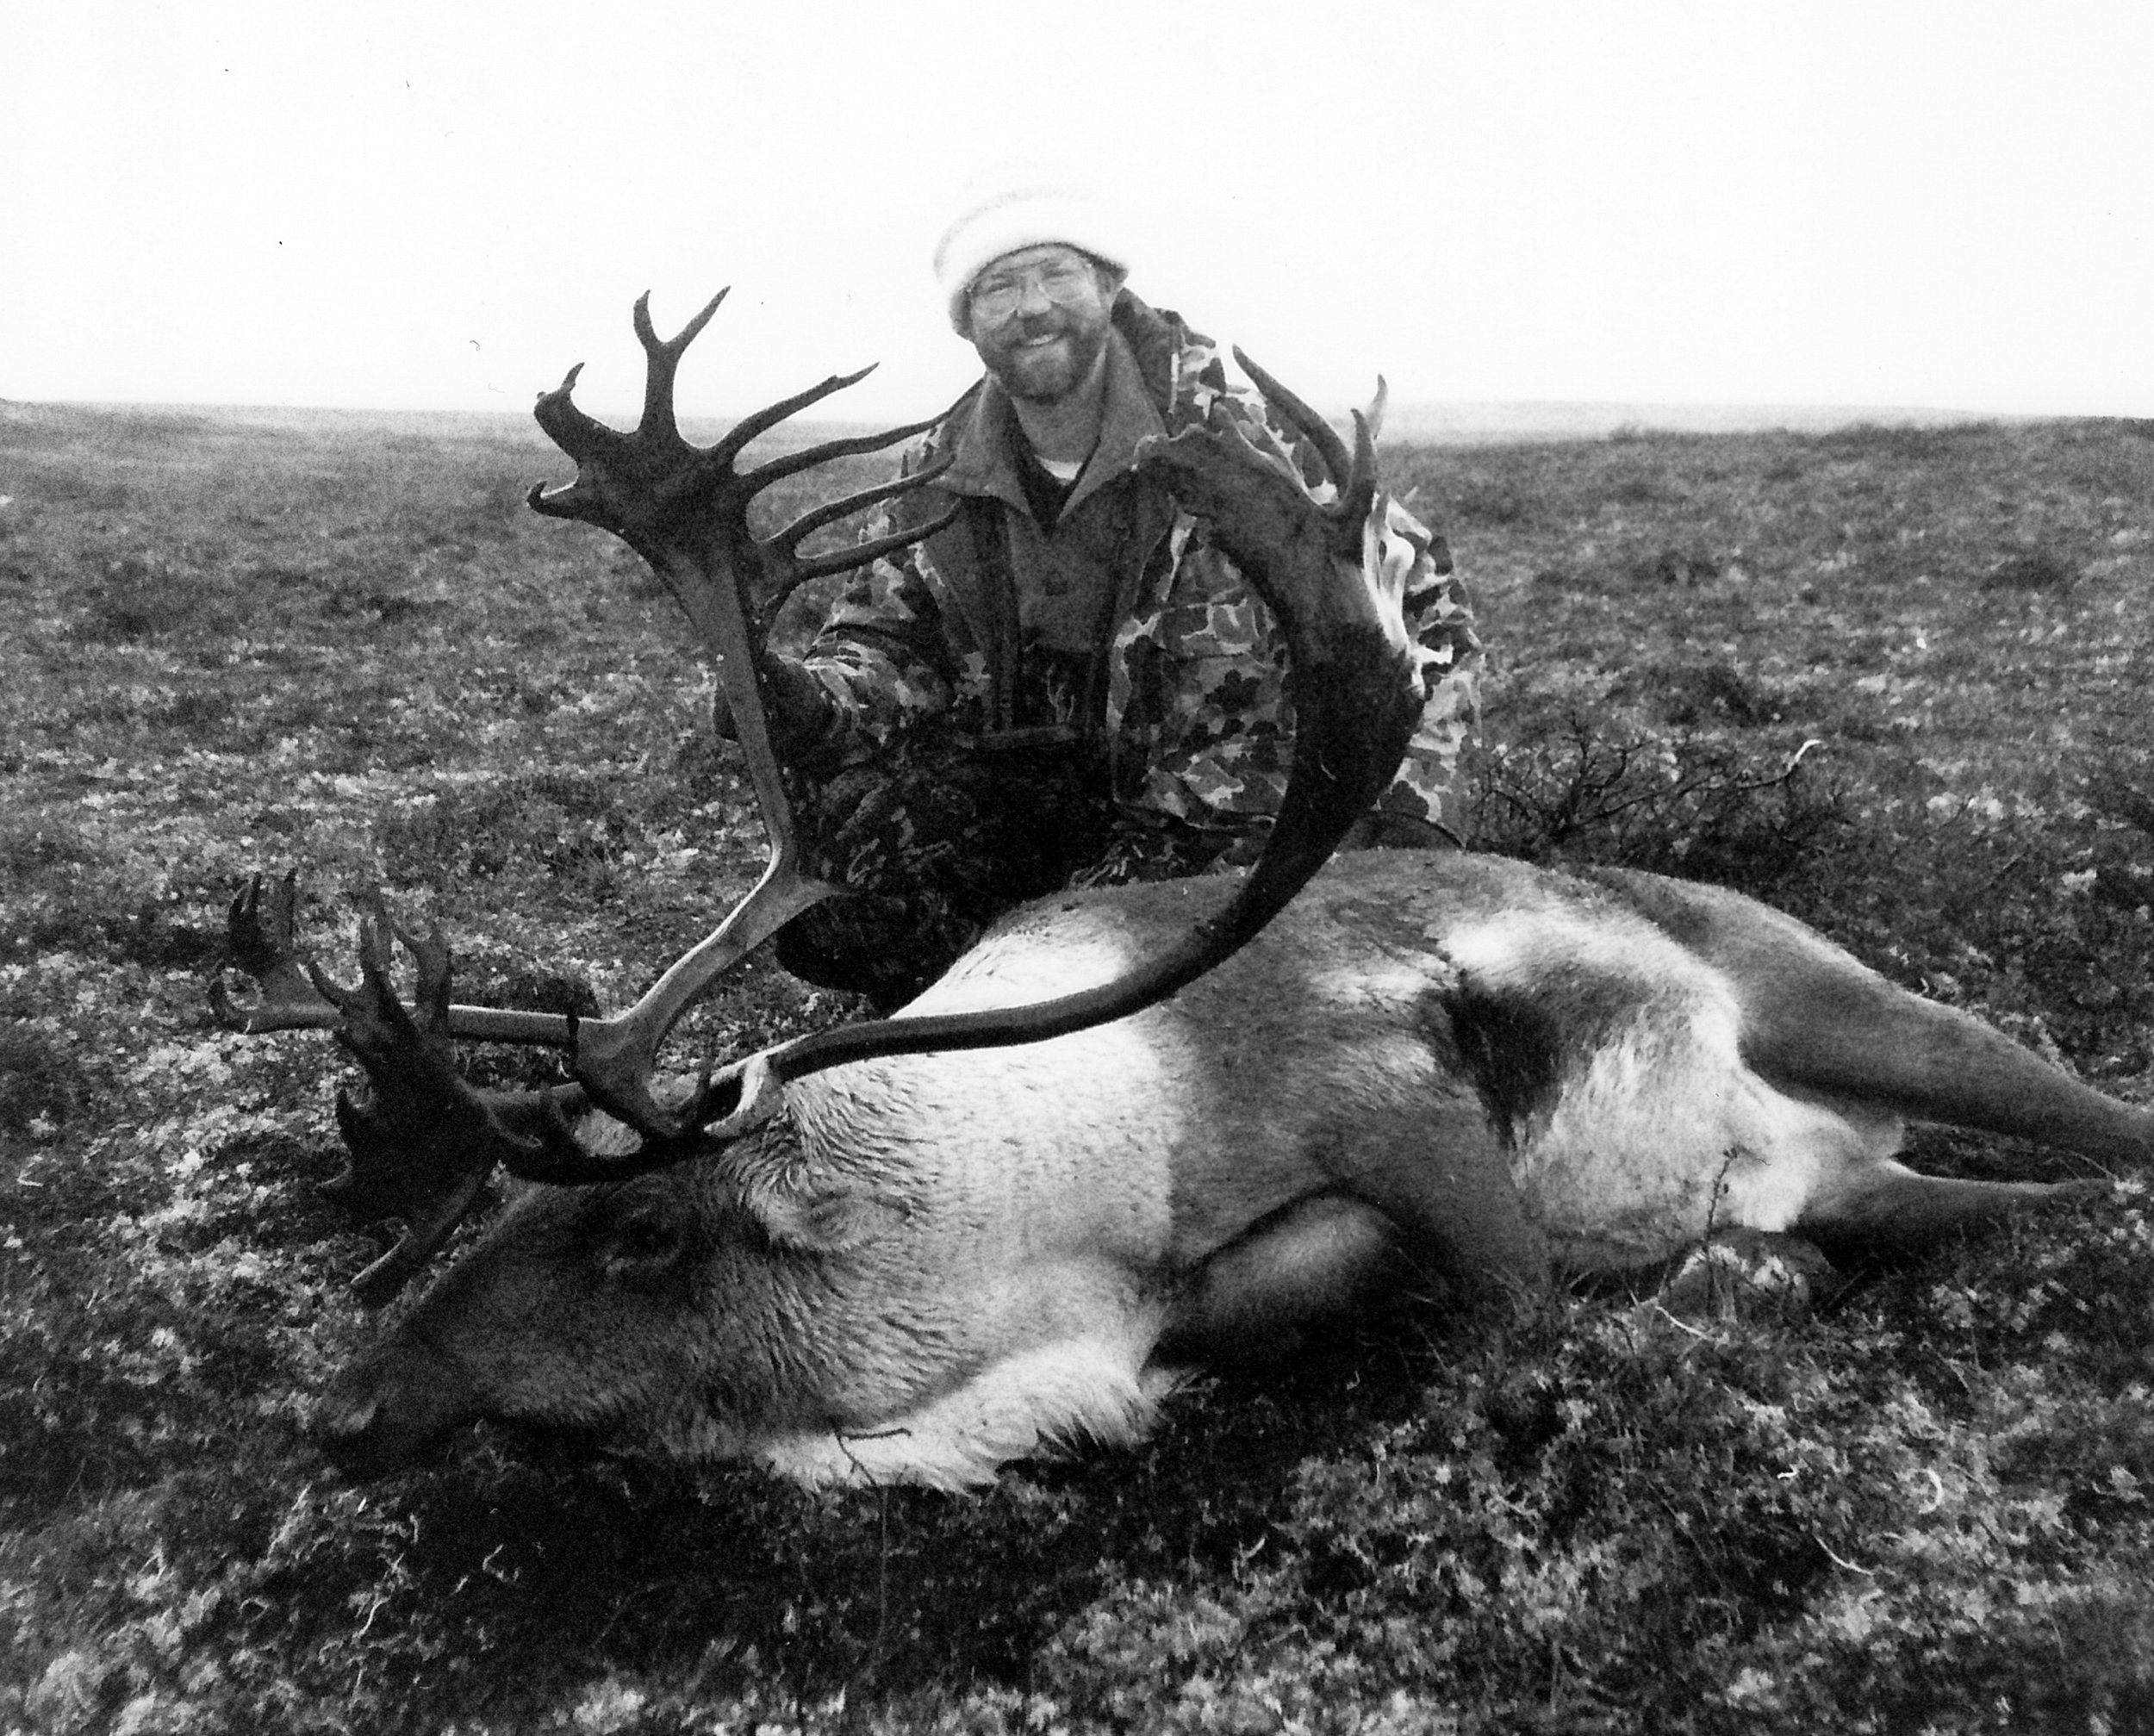 Tim with his 396 B&C caribou.